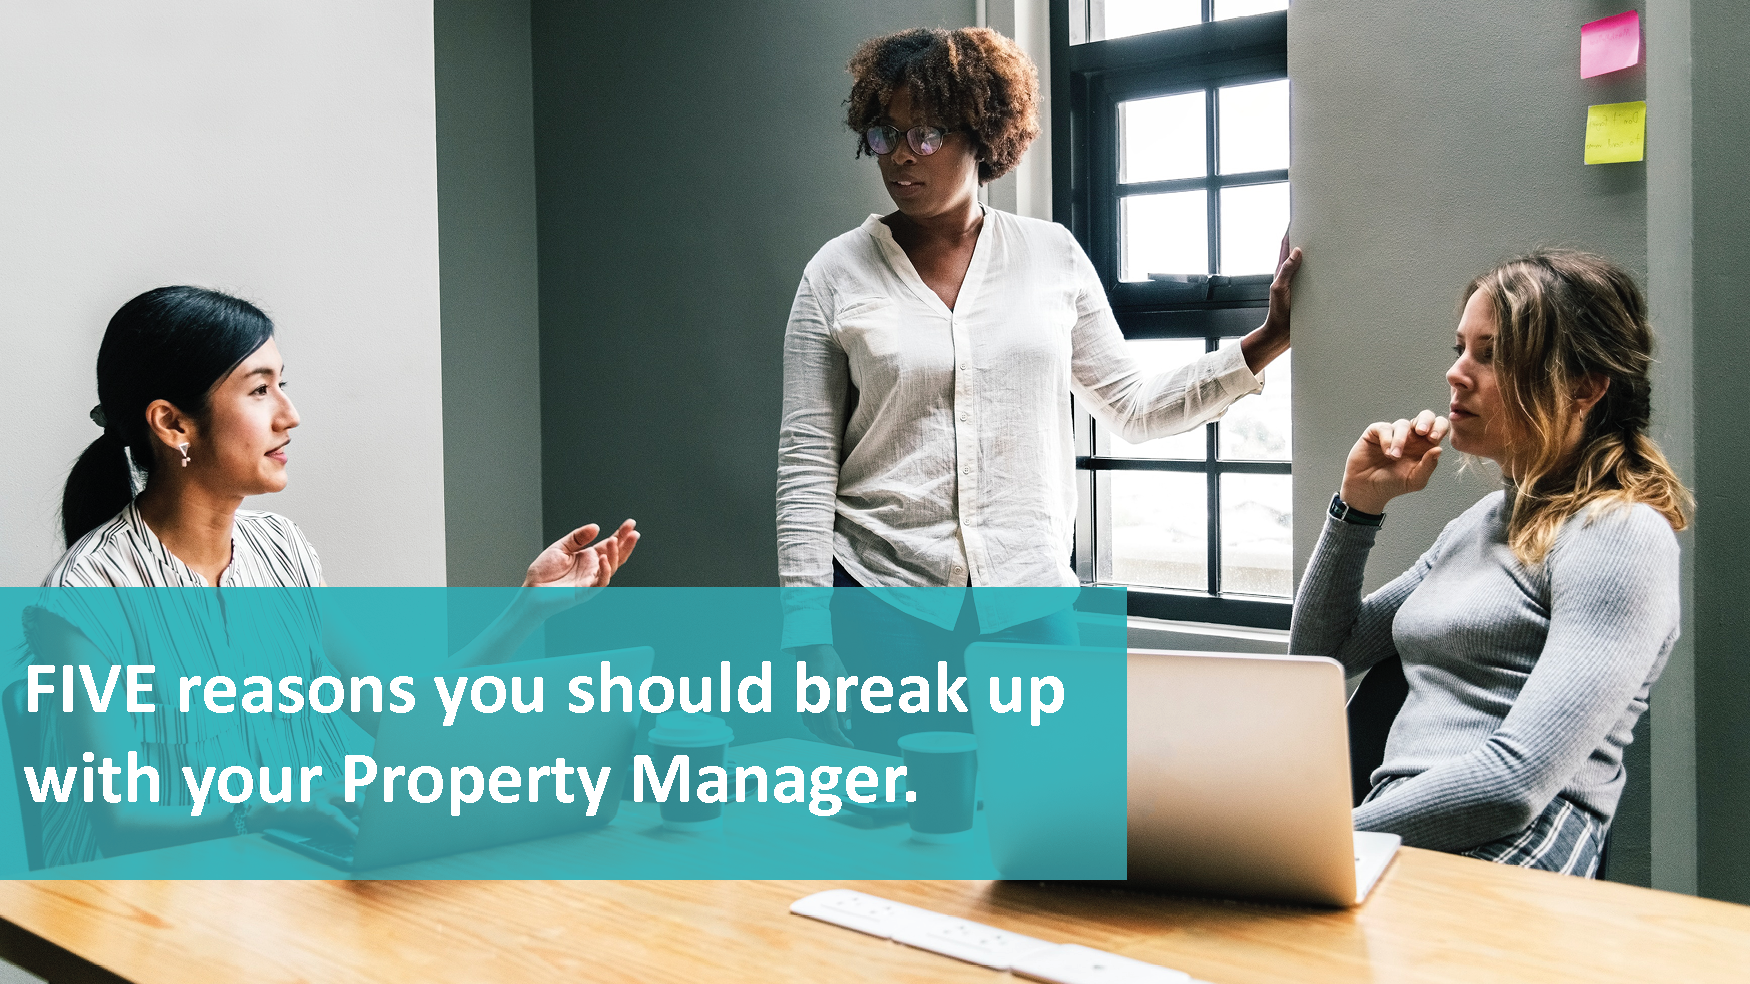 FIVE-reasons-you-should-break-up-with-your-property-manager